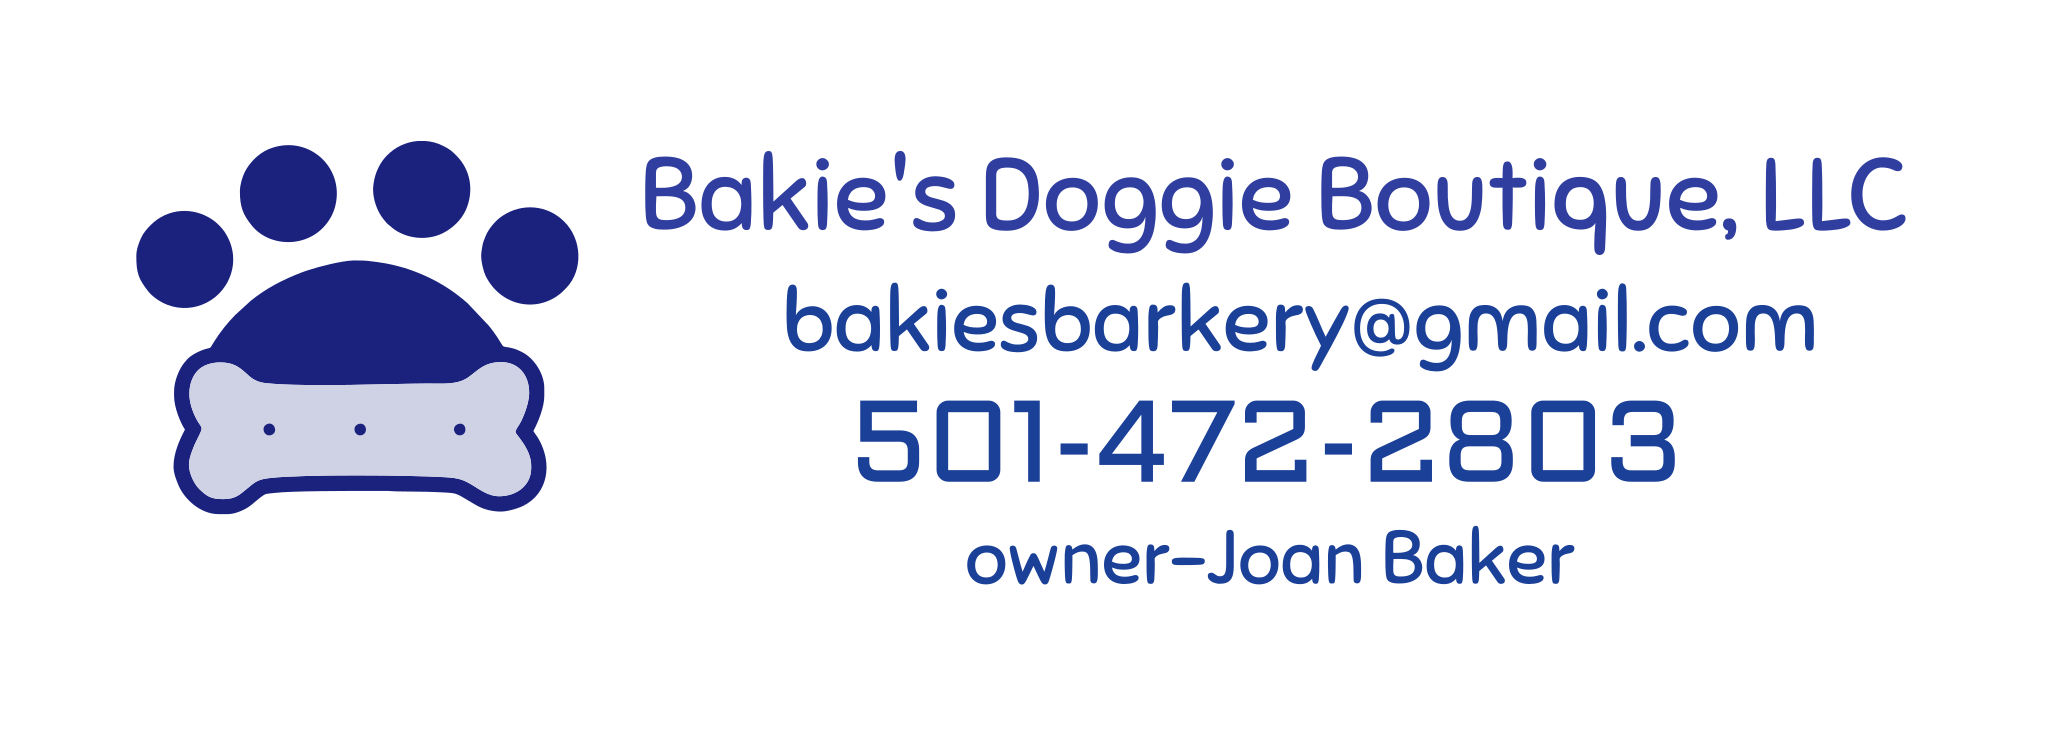 Bakie's Doggie Boutique